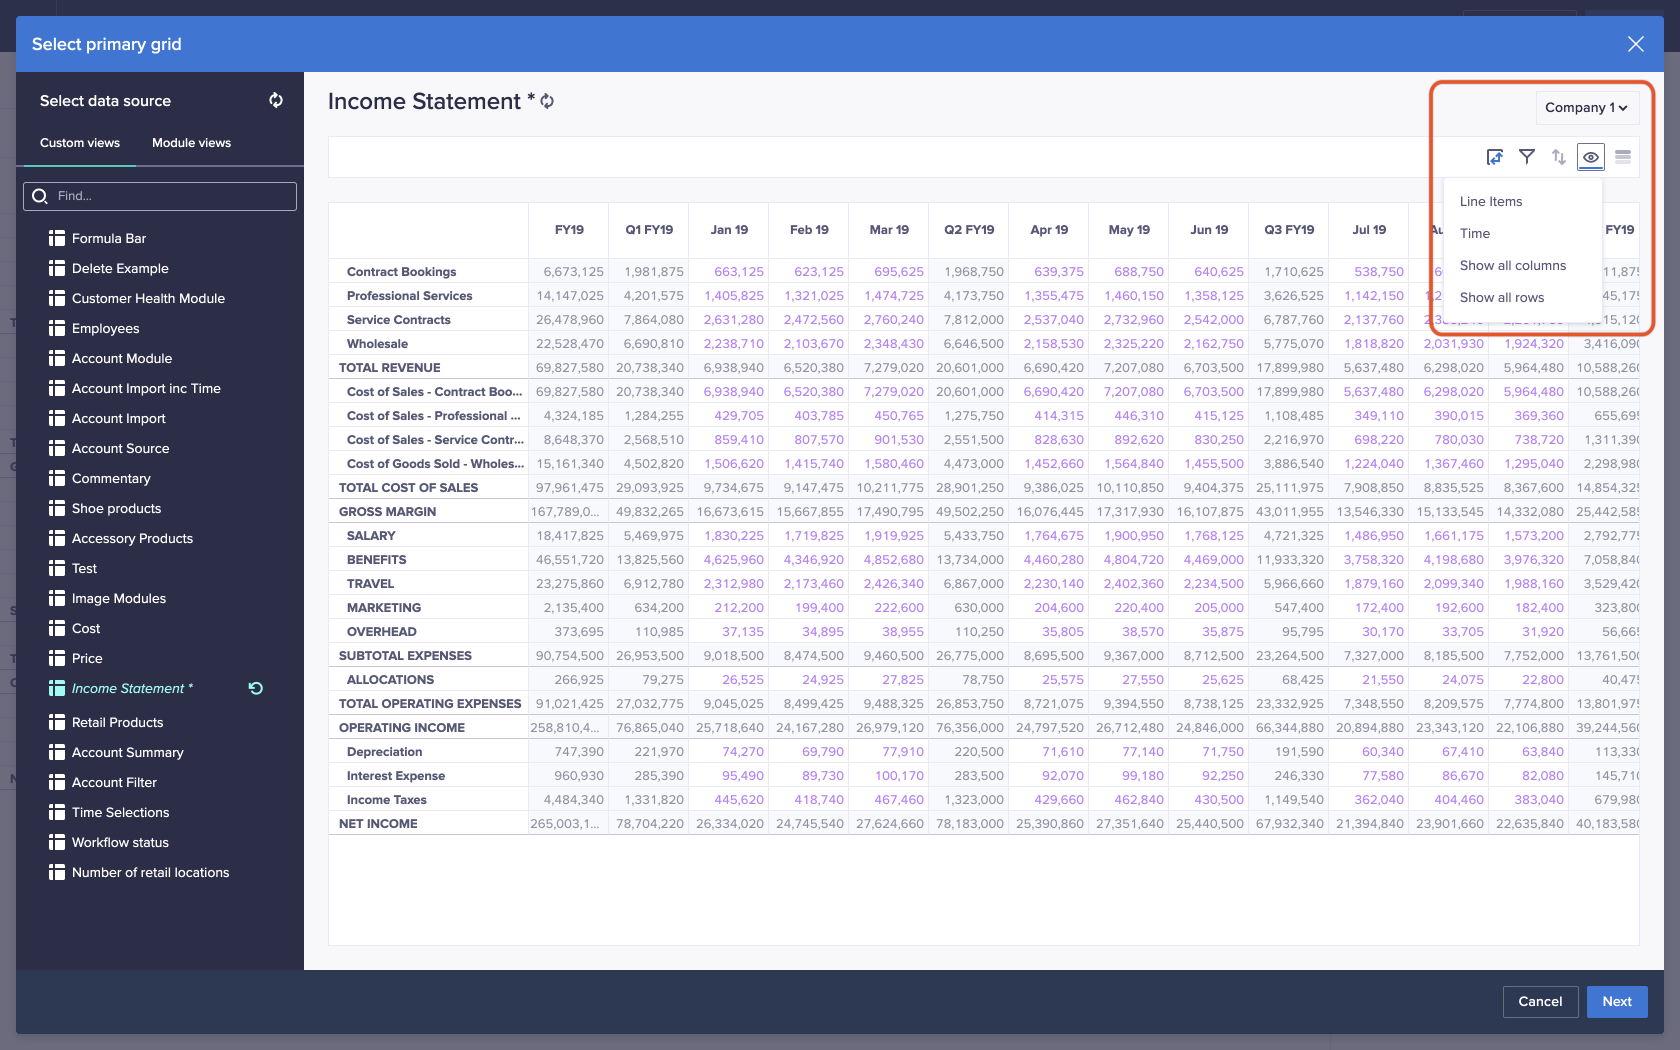 A custom view based on a module named Income Statement. The Show / Hide icon, an eye, has been clicked in the top-right of the screen, and a dropdown displays.